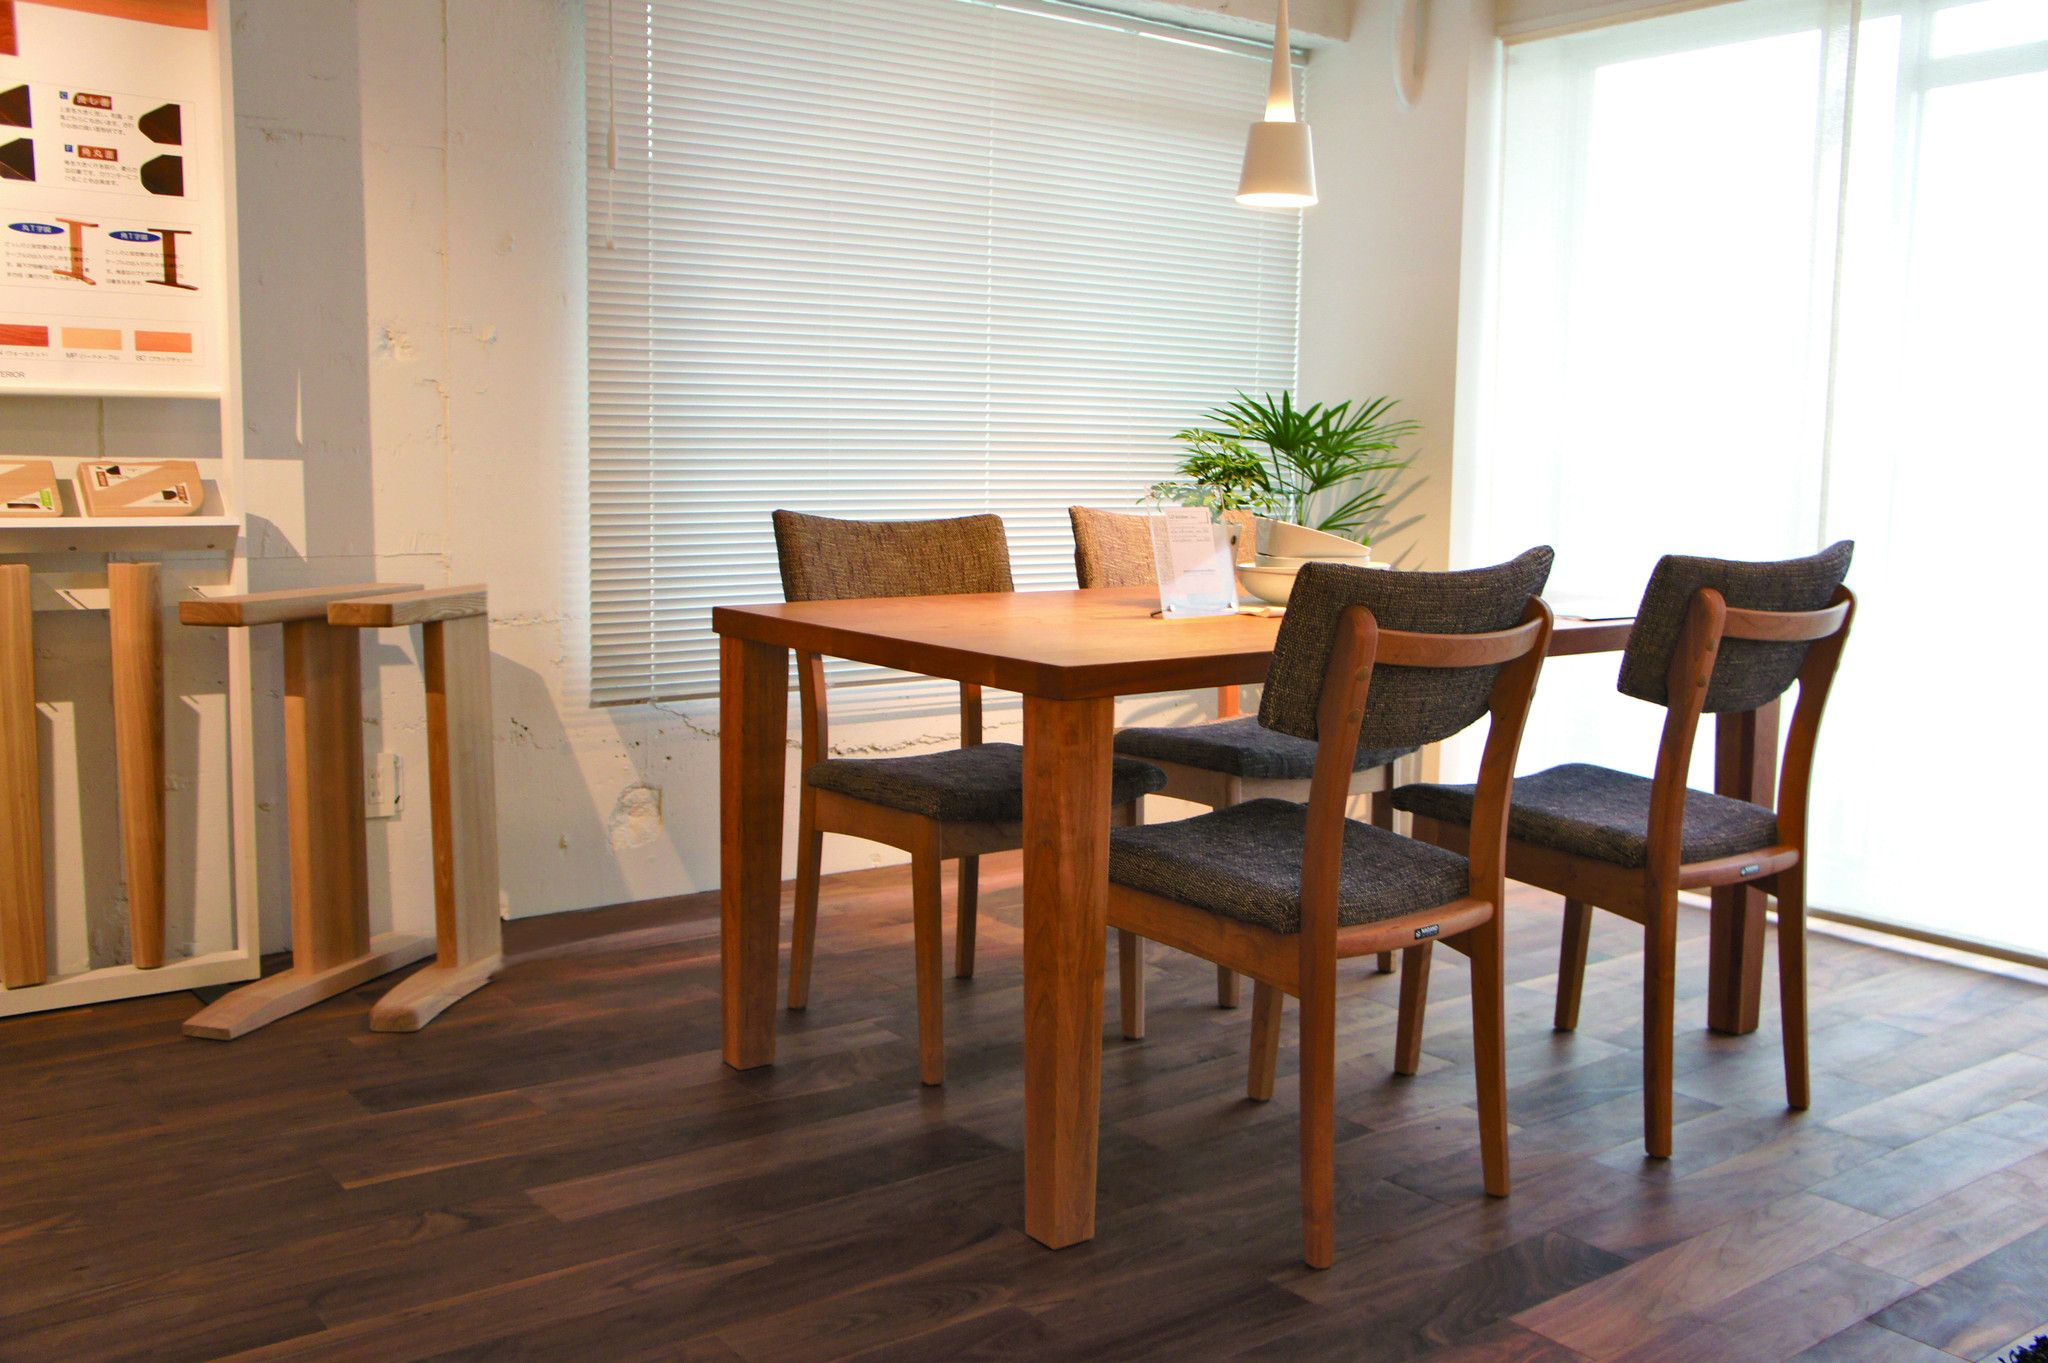 LinX Dining Table DT400 - Dining Table - Nagano Interior